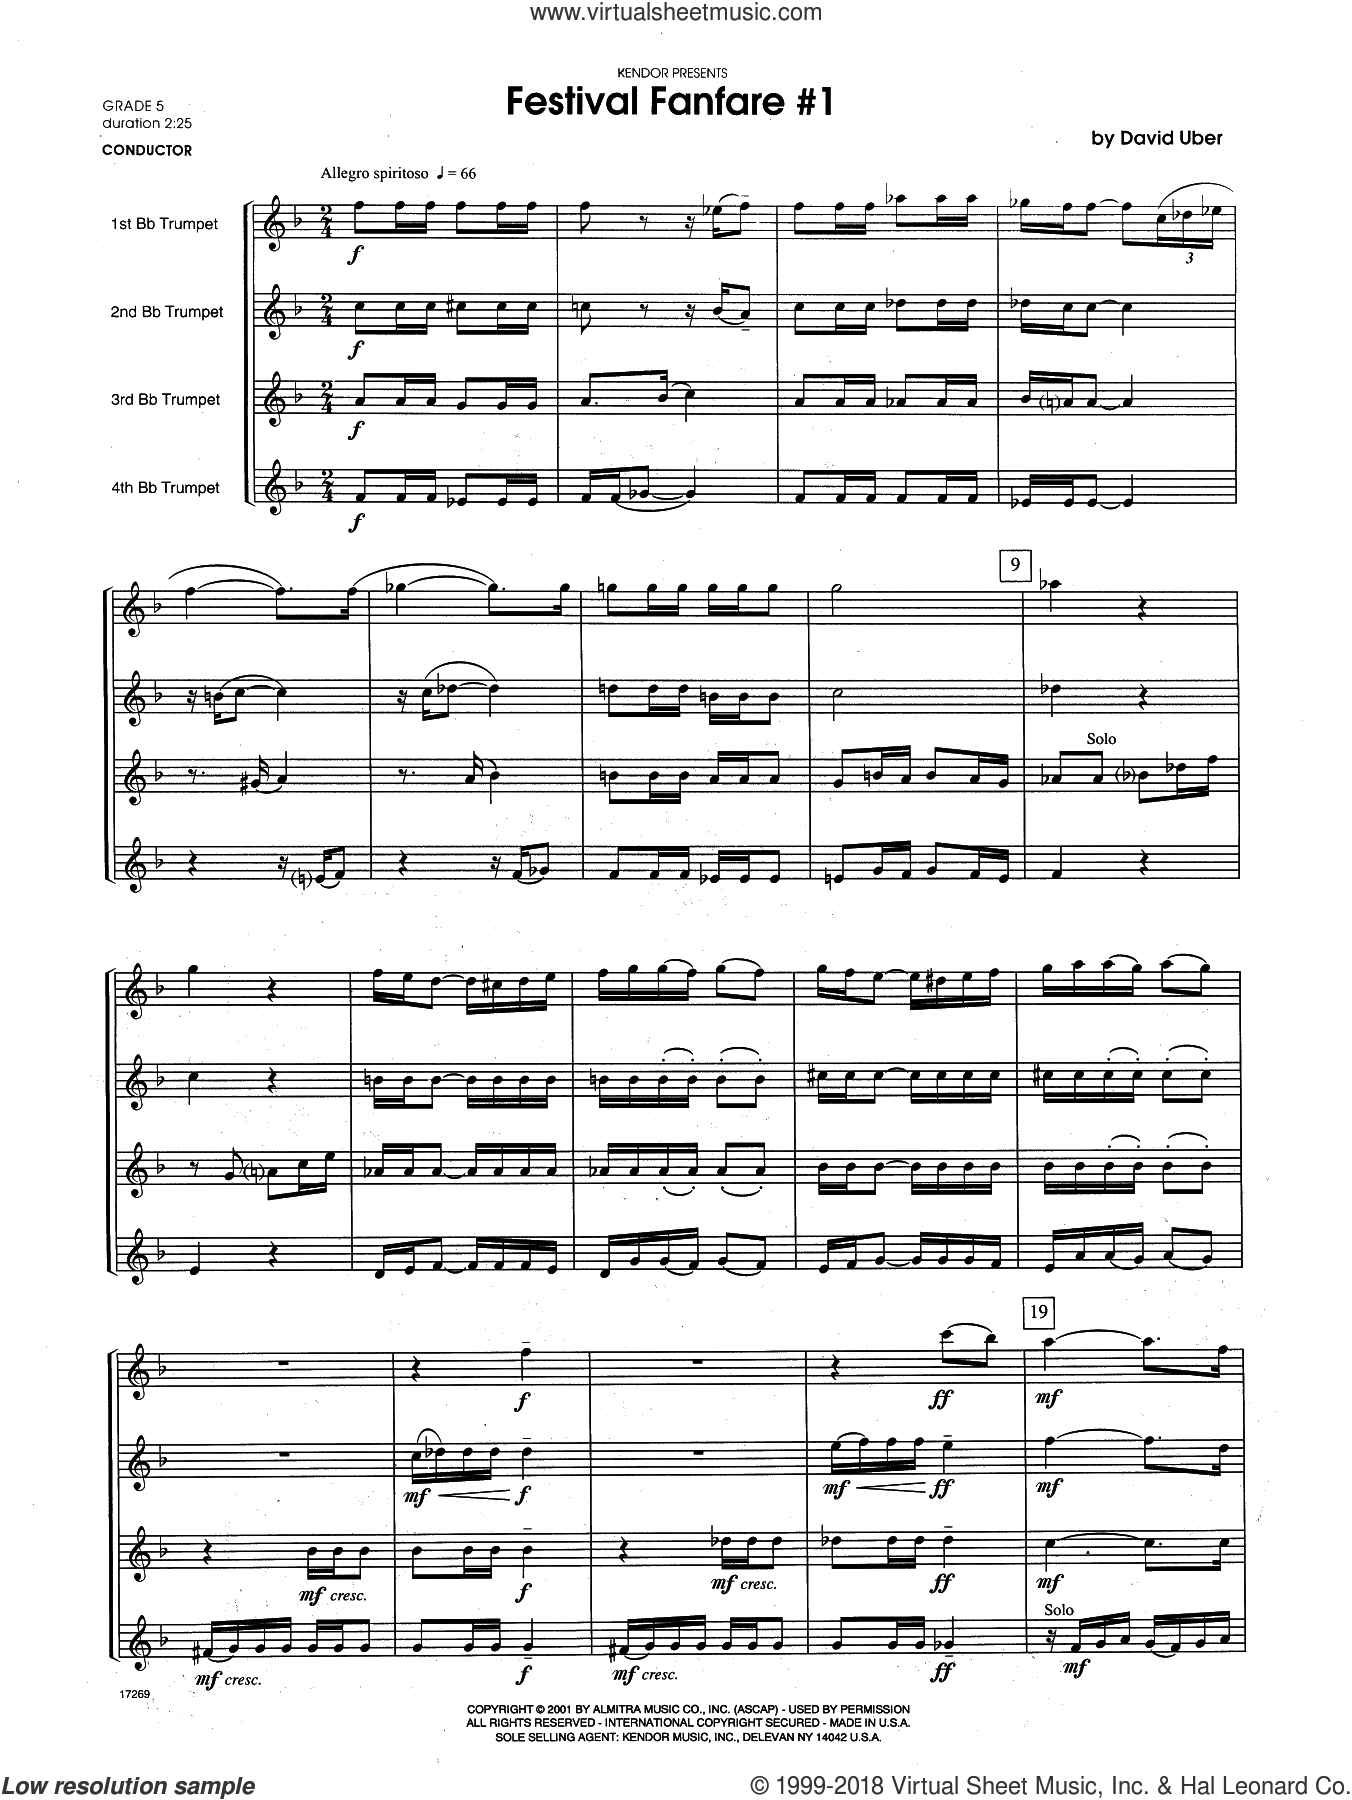 Festival Fanfare #1 (COMPLETE) sheet music for trumpet quartet by David Uber, intermediate skill level